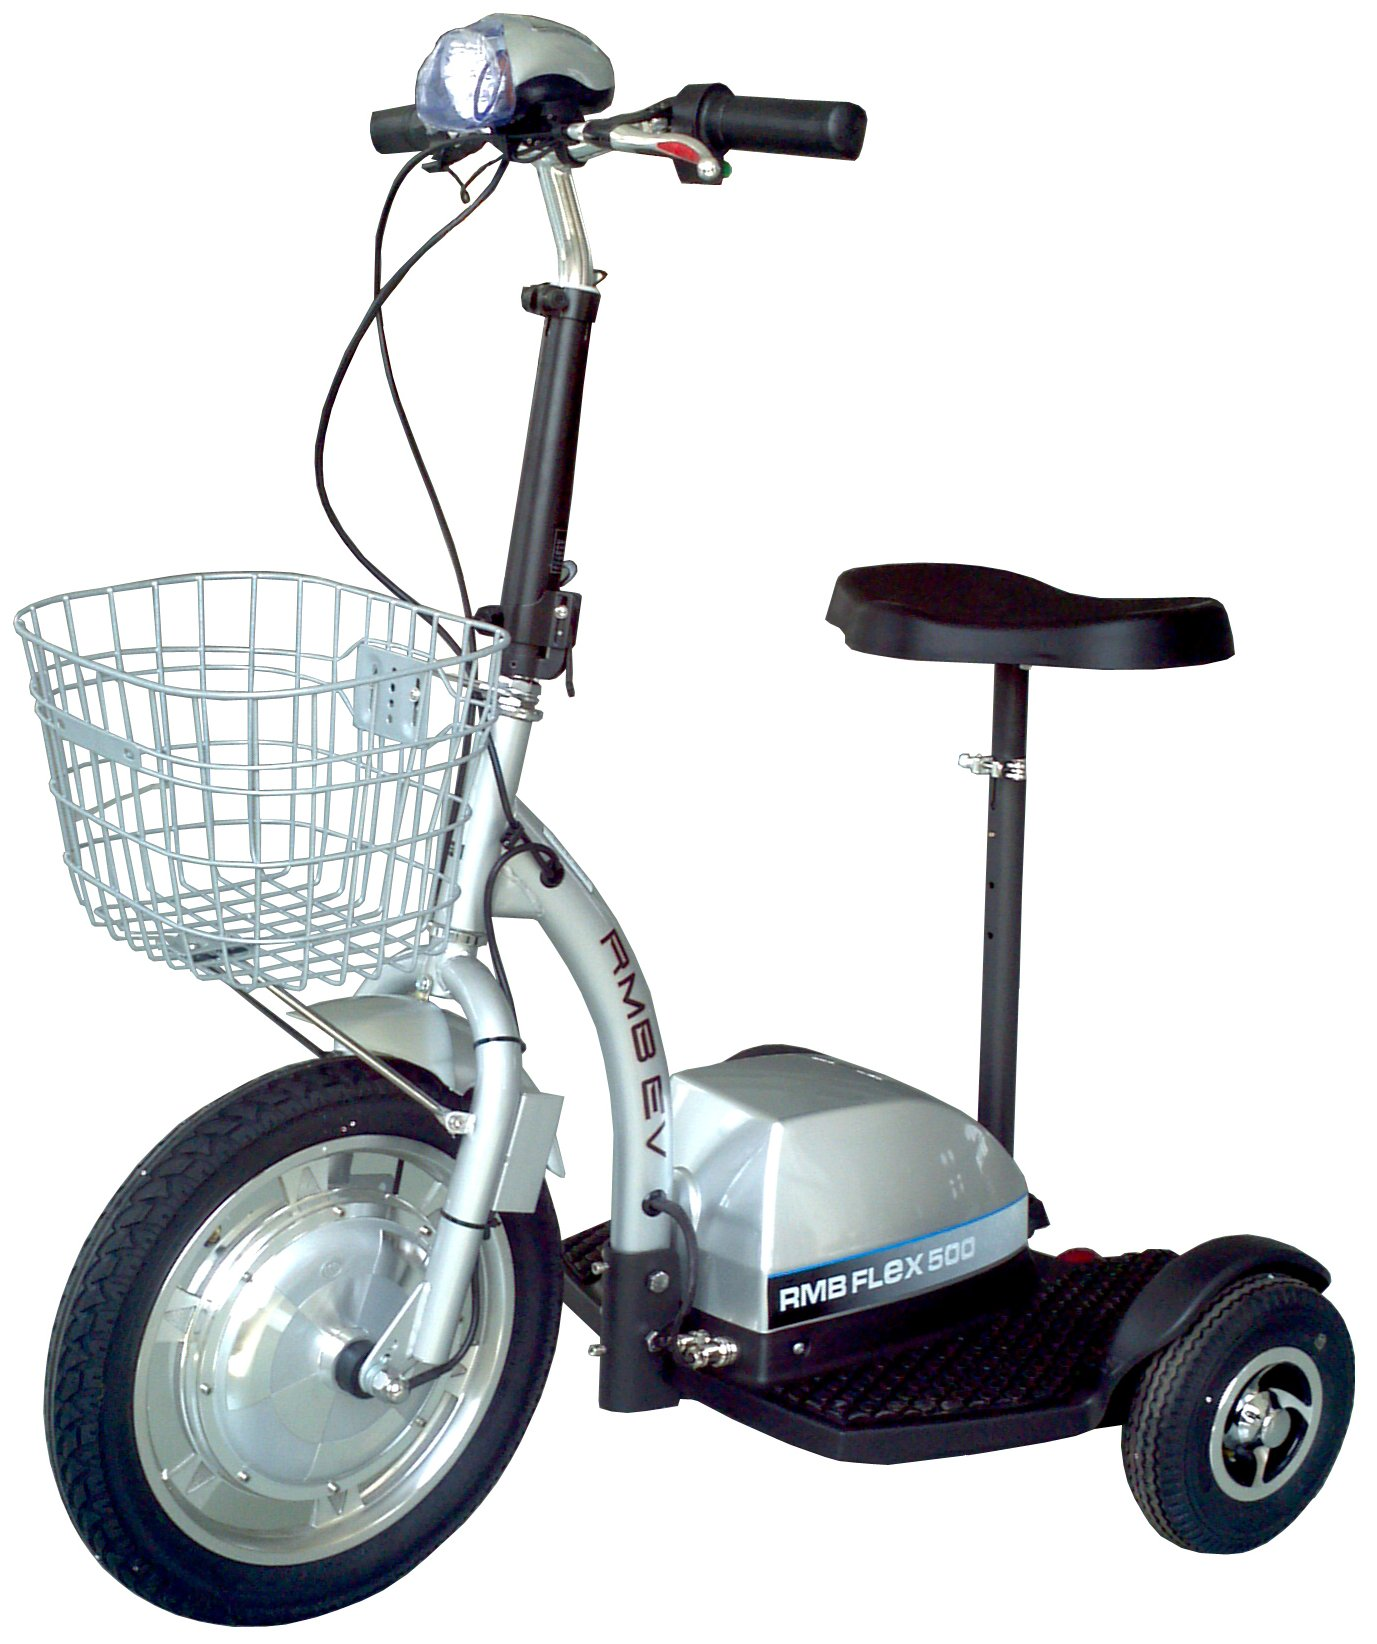 rmb flex 48v 500w personal transportation 3 wheel electric scooter. Black Bedroom Furniture Sets. Home Design Ideas